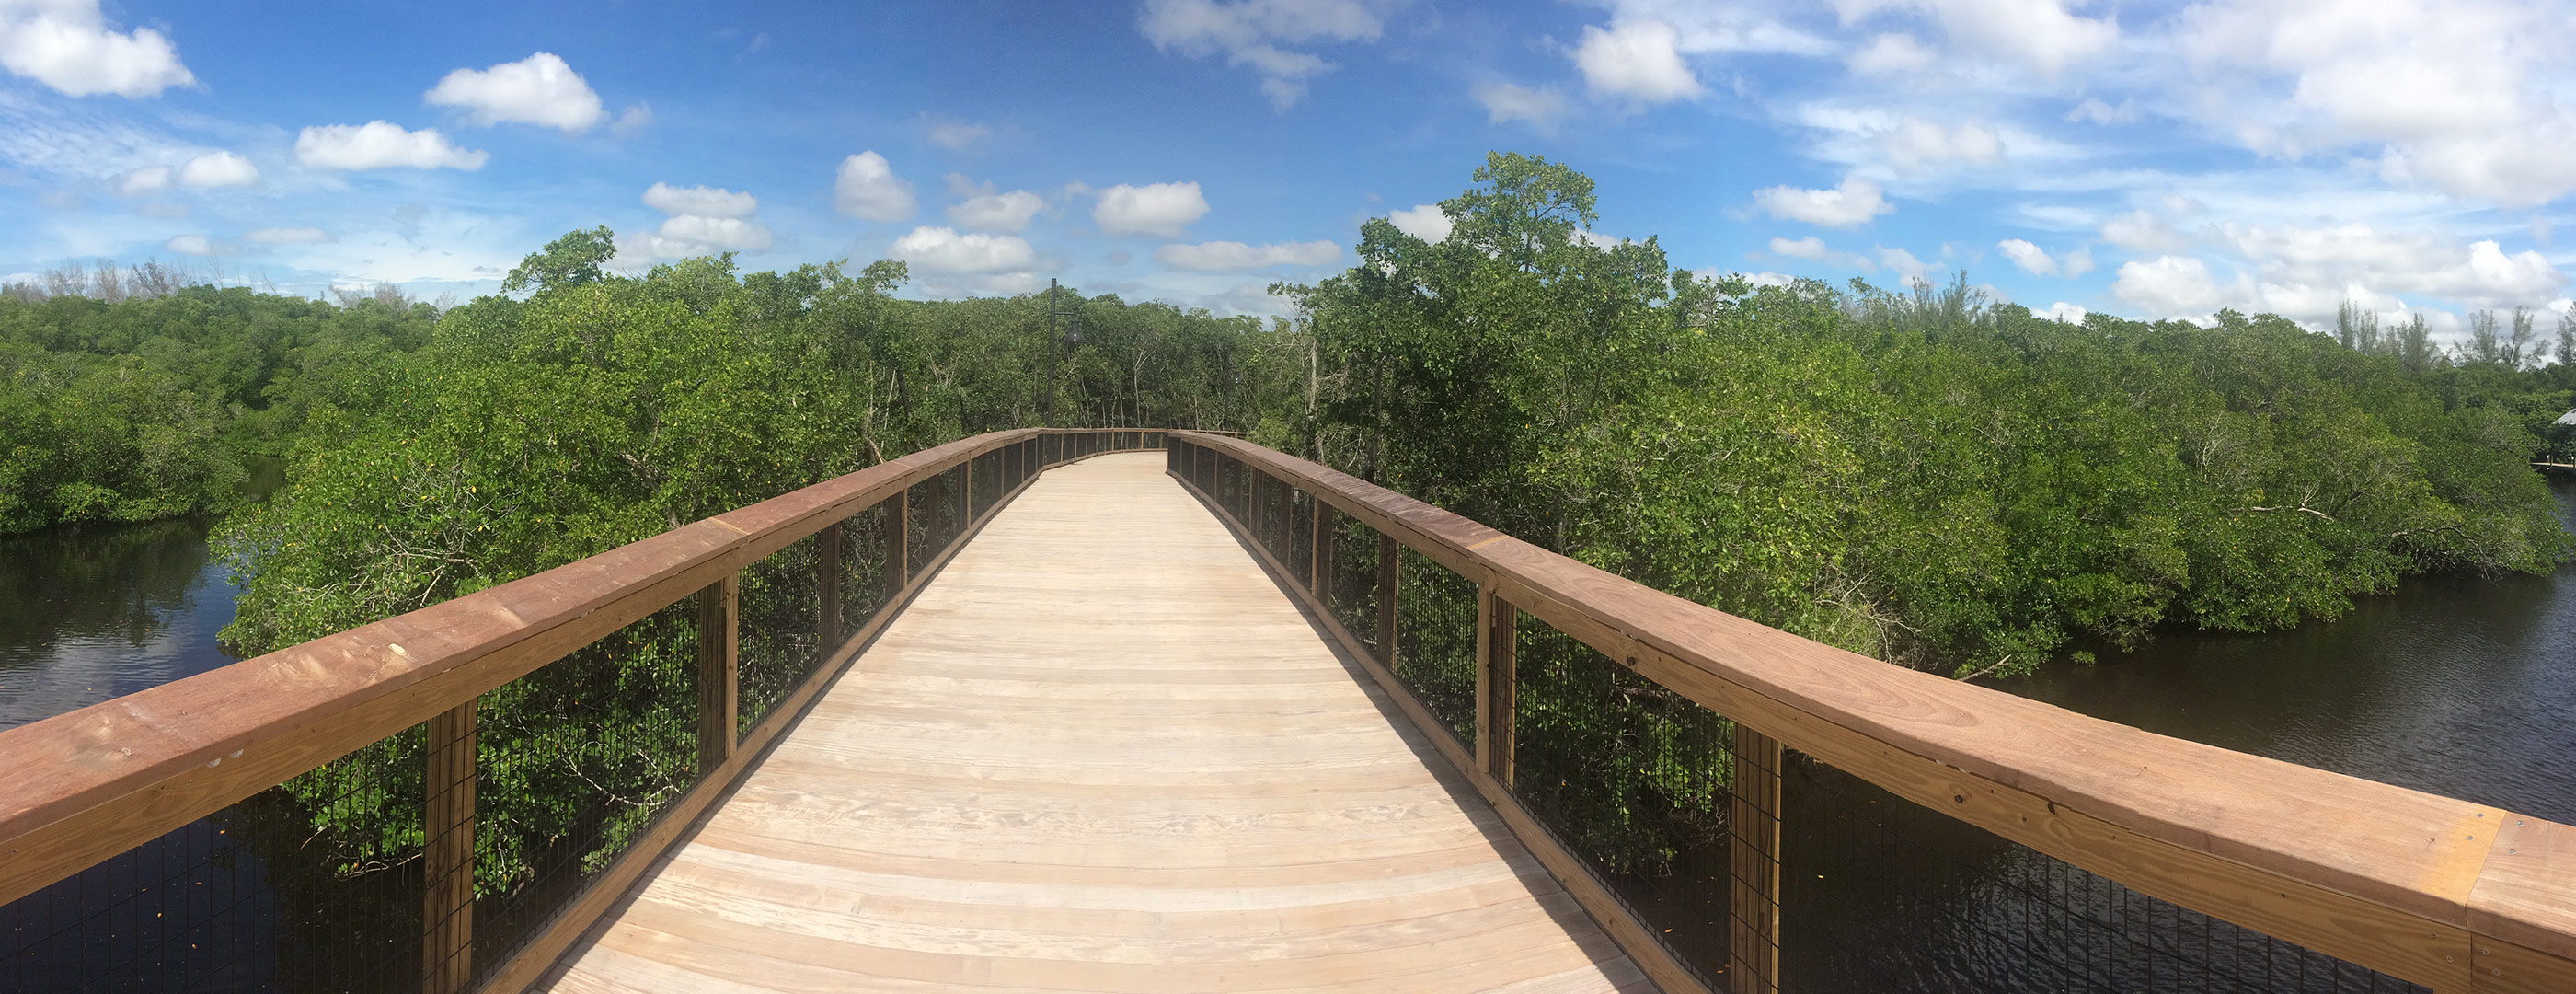 Board walk through preserve